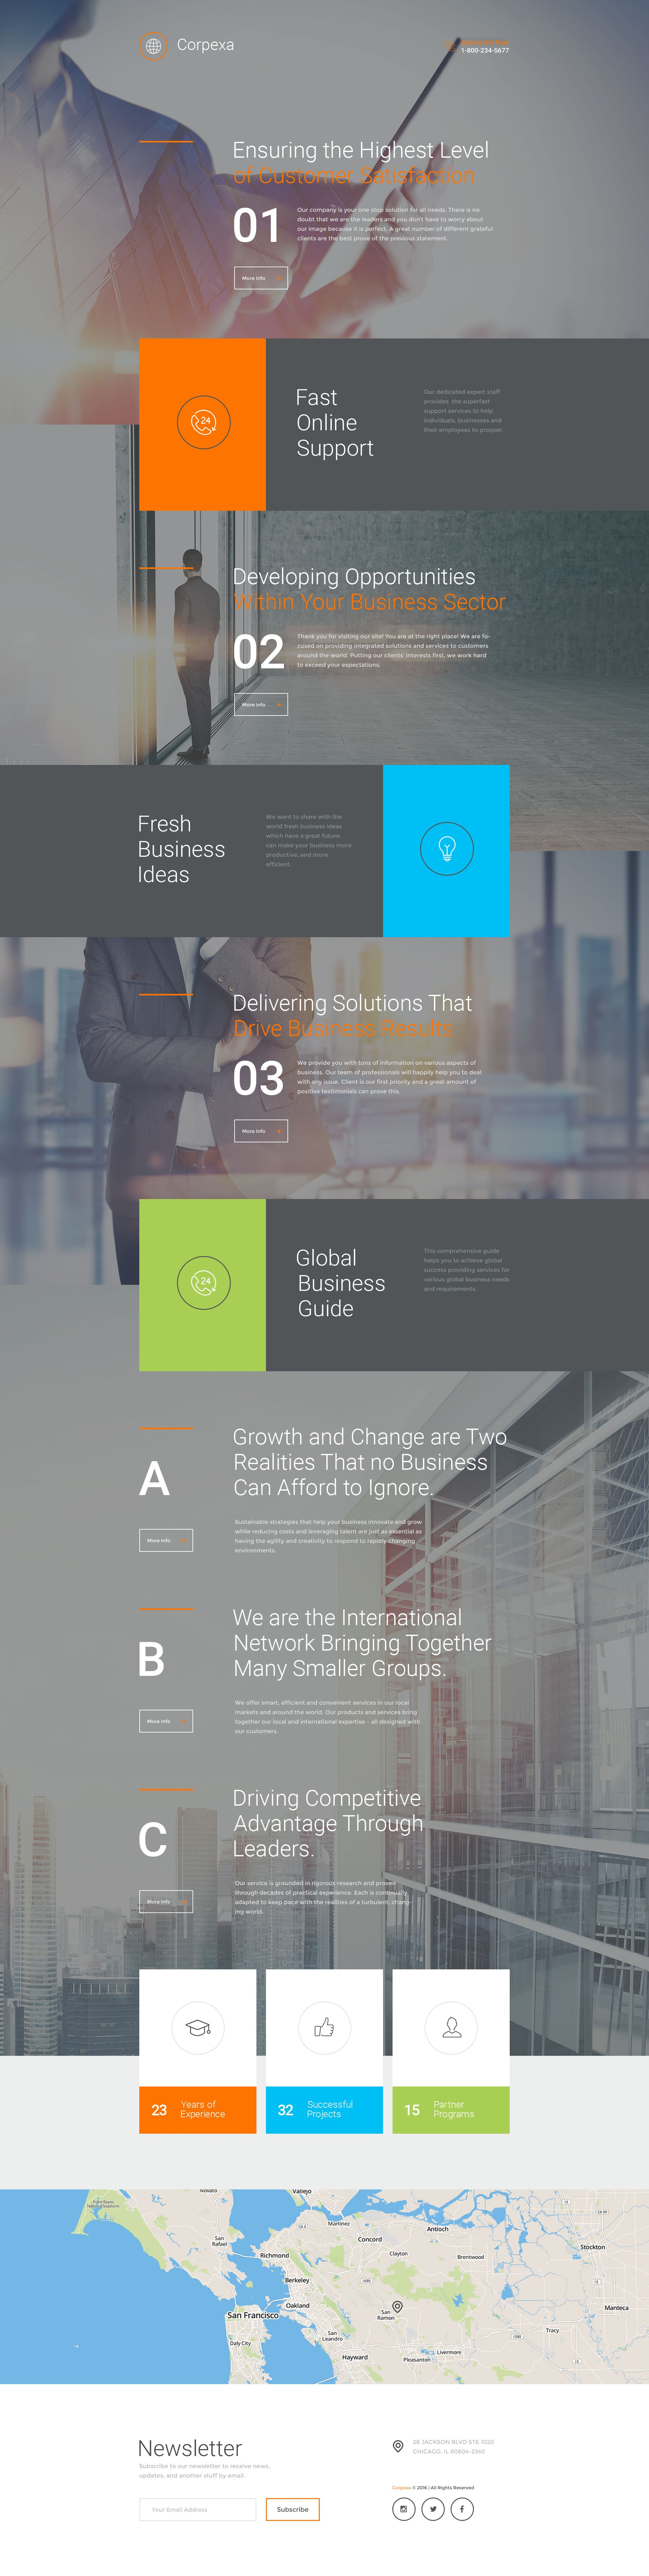 Business & Services Responsive Landing Page Template - screenshot